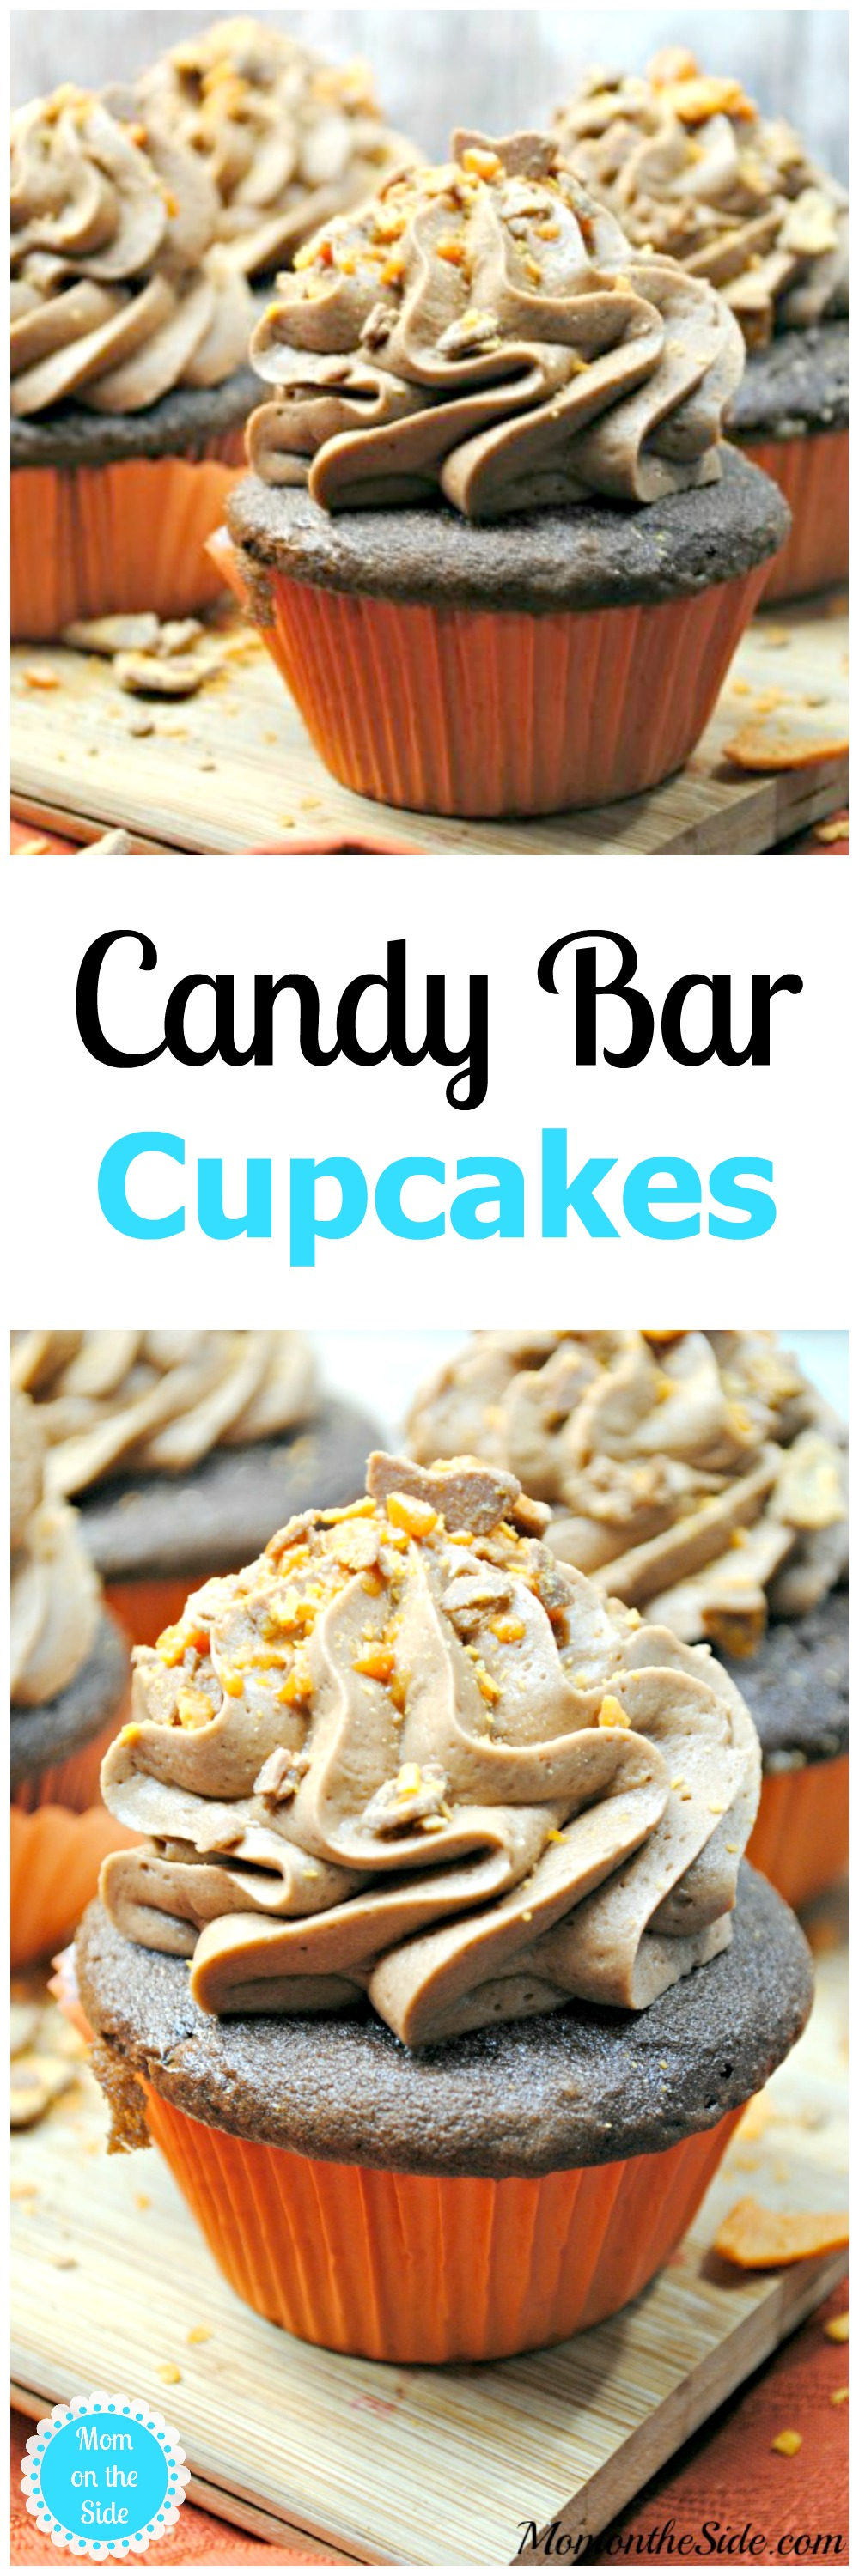 The Best Candy Bar Cupcakes Recipe - Mom on the Side